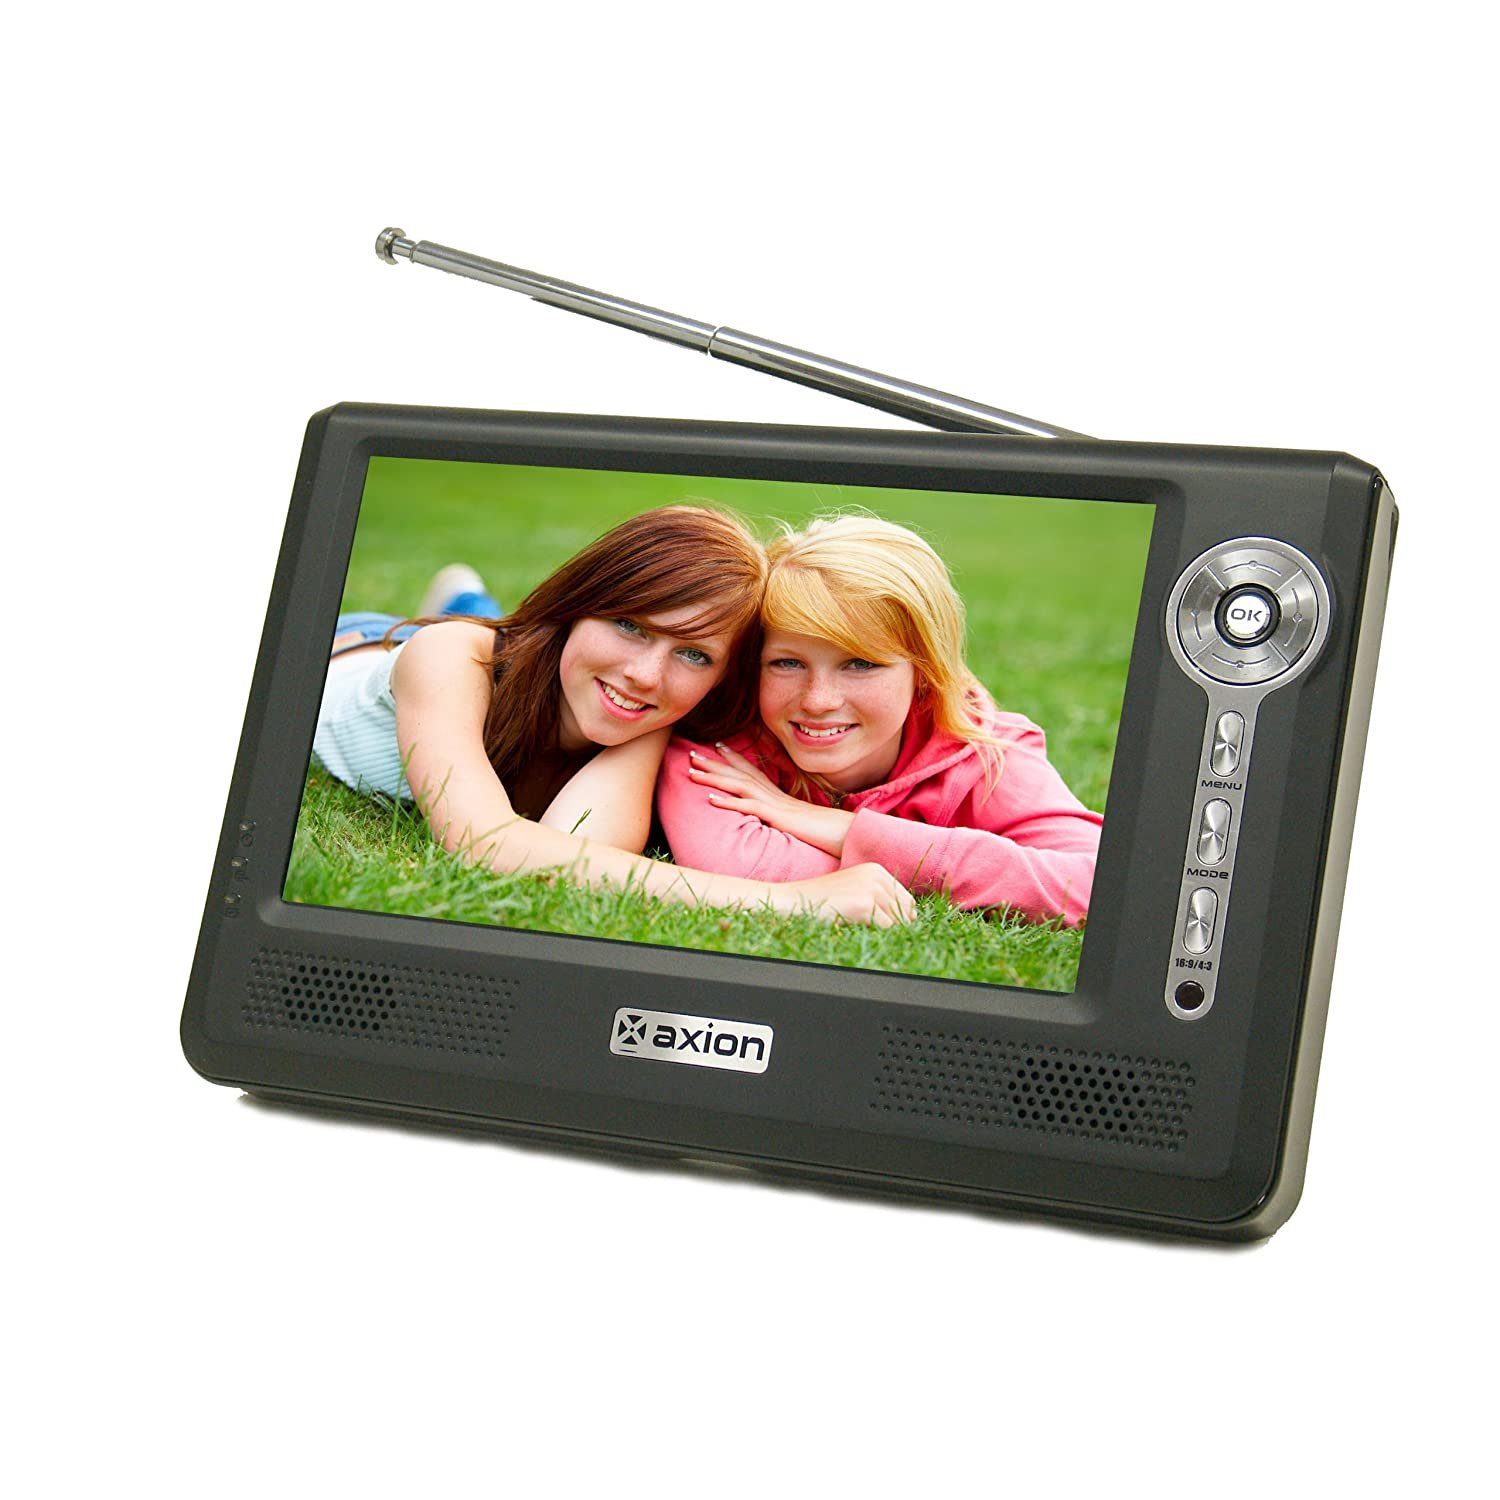 Axion AXN-8705 7-Inch Widescreen Portable LCD TV (Black)